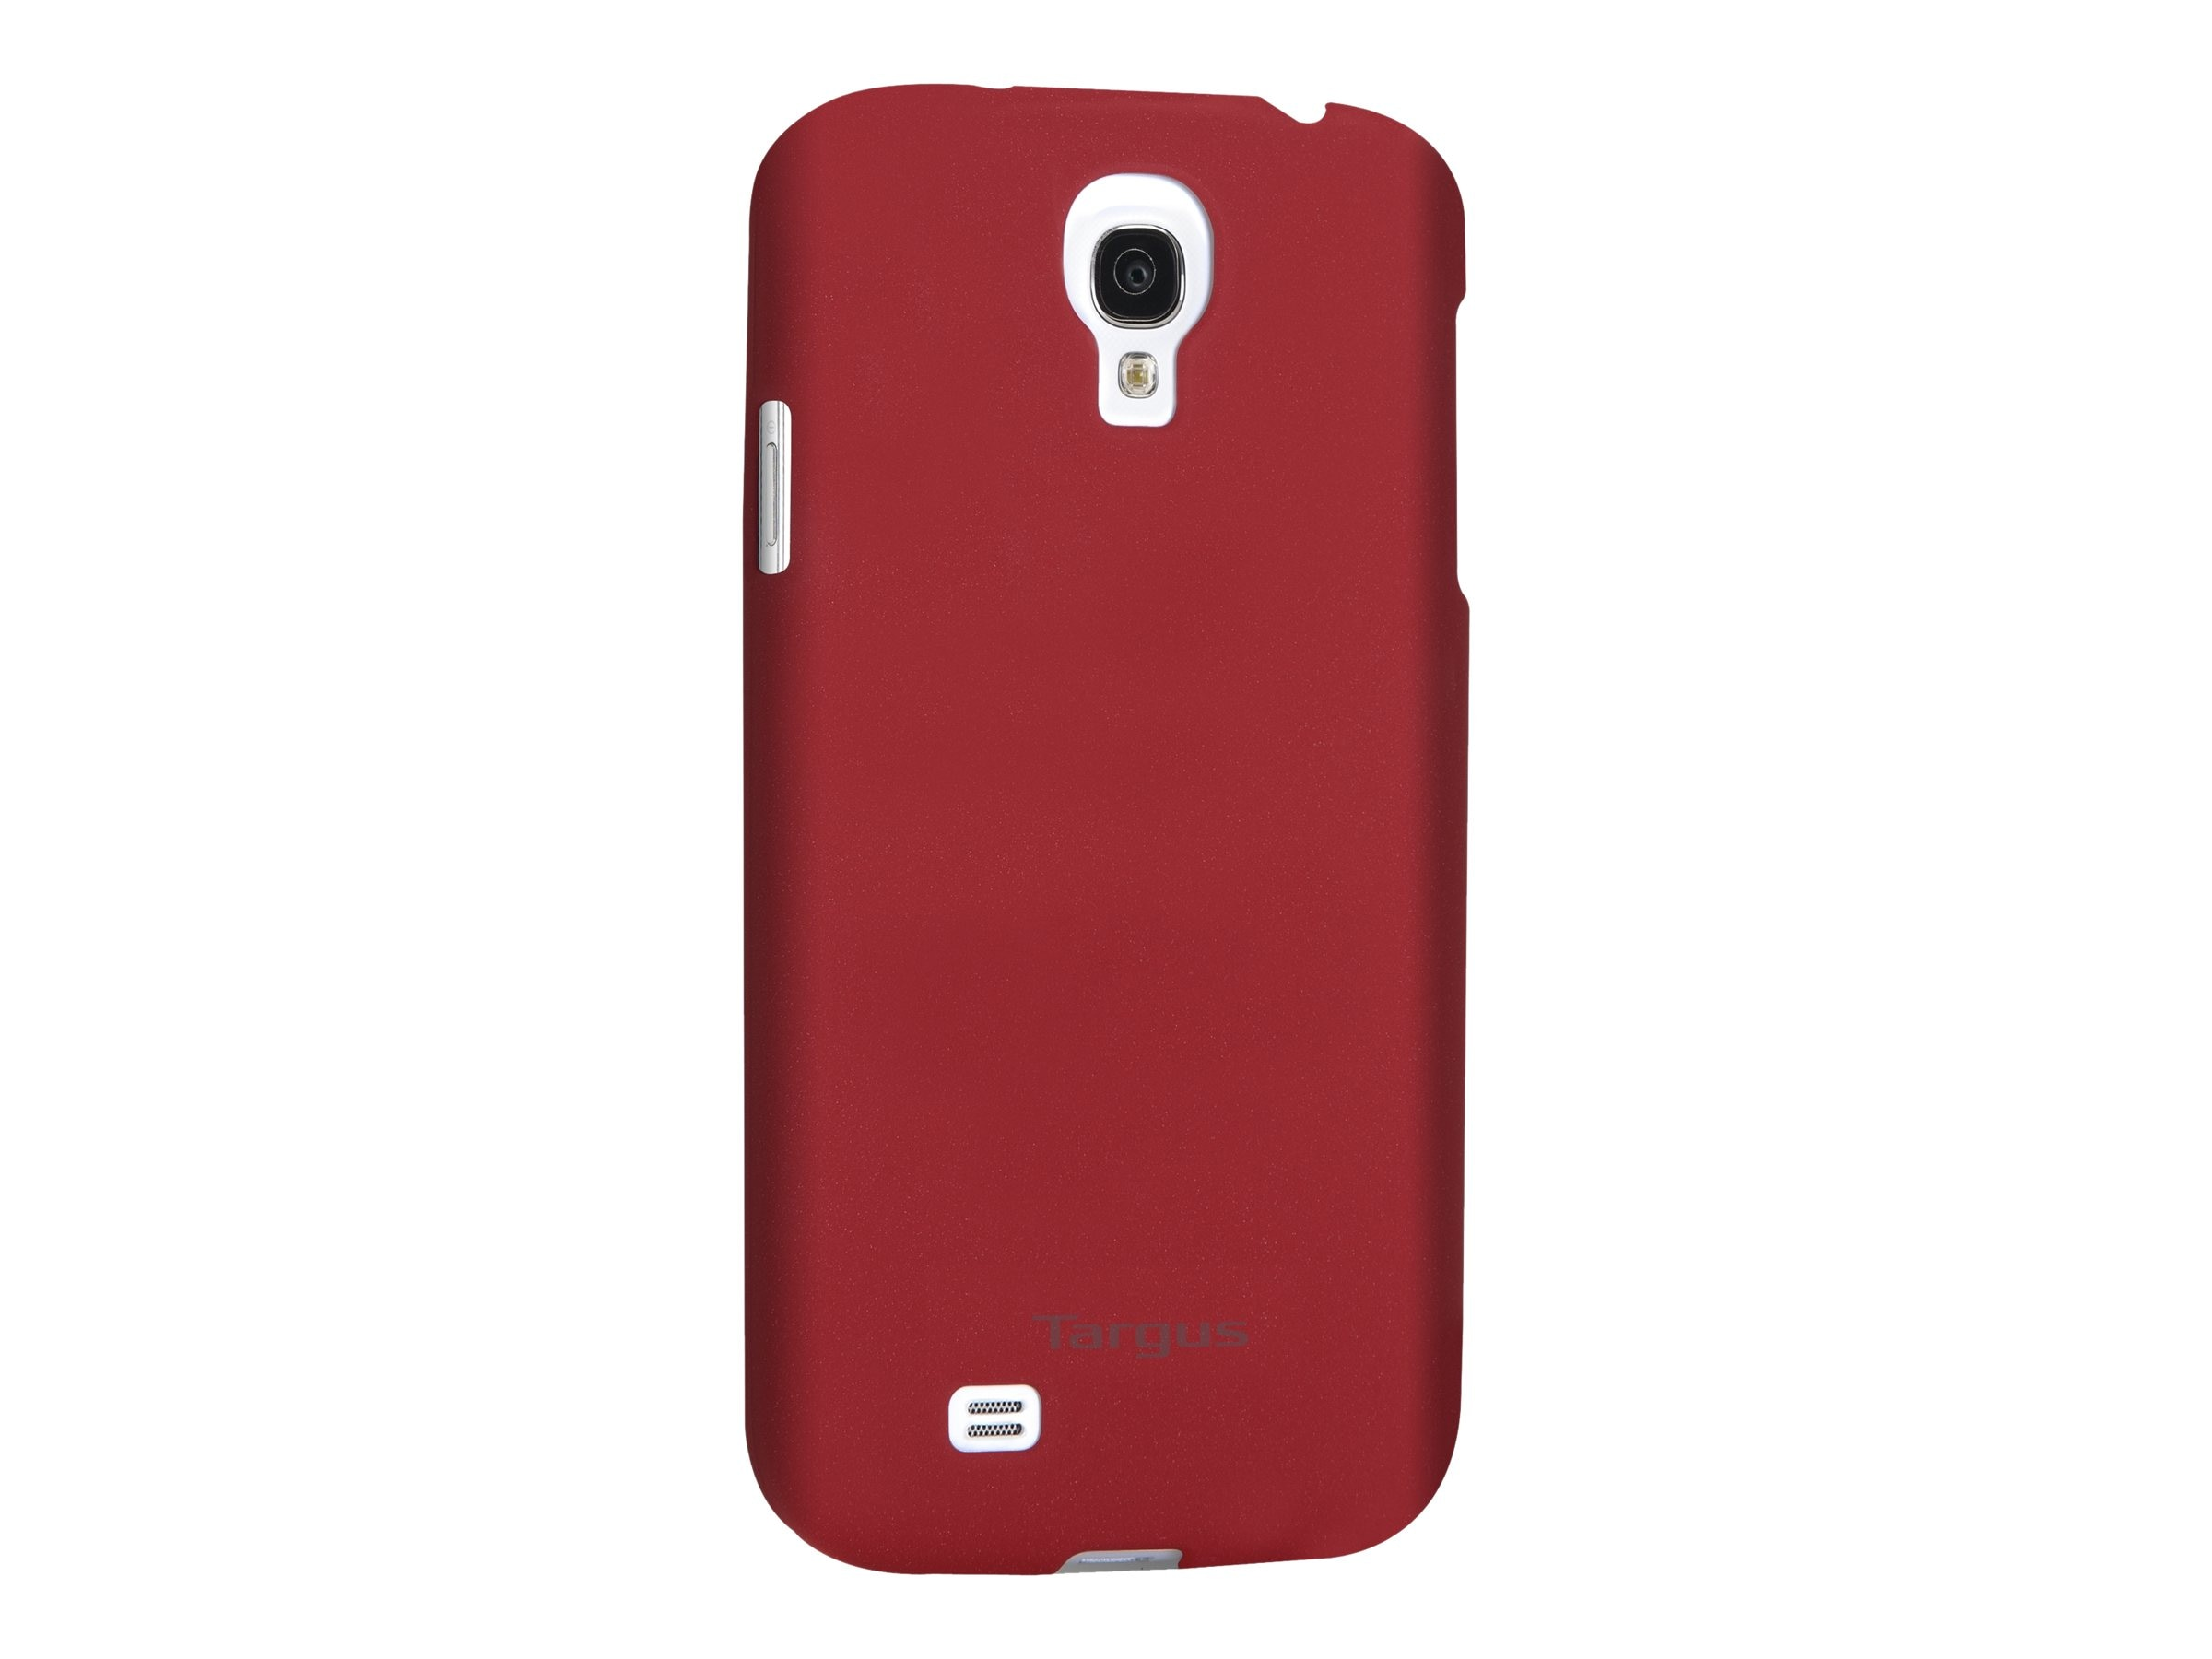 Targus Samsung Galaxy S4 Snap  shell, TFD03703US, 15724301, Carrying Cases - Phones/PDAs